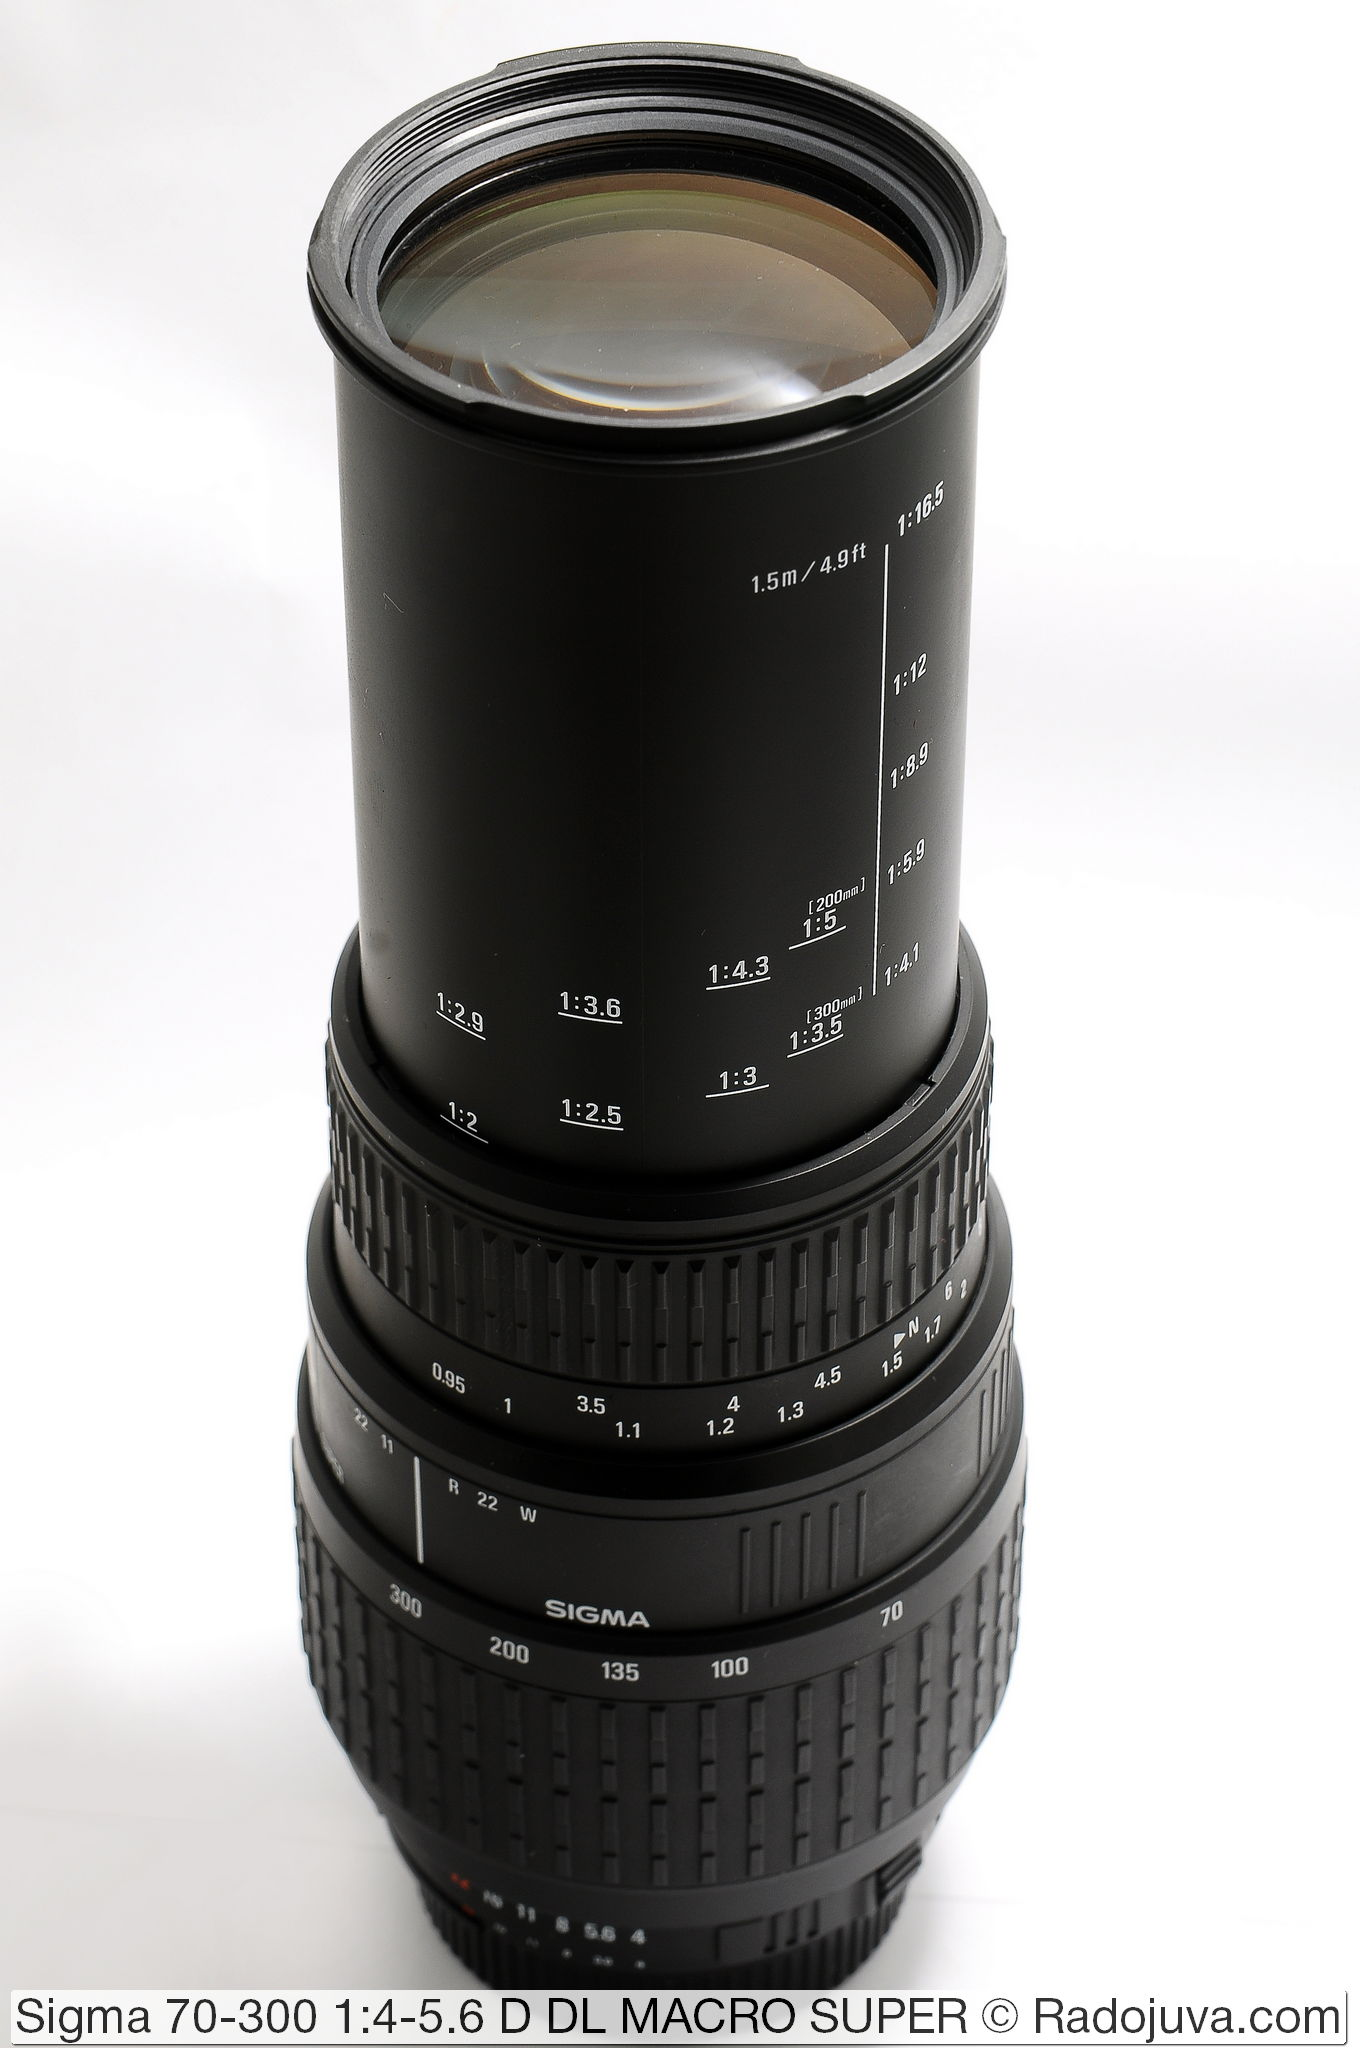 Sigma 70-300 1:4-5.6 D DL MACRO SUPER